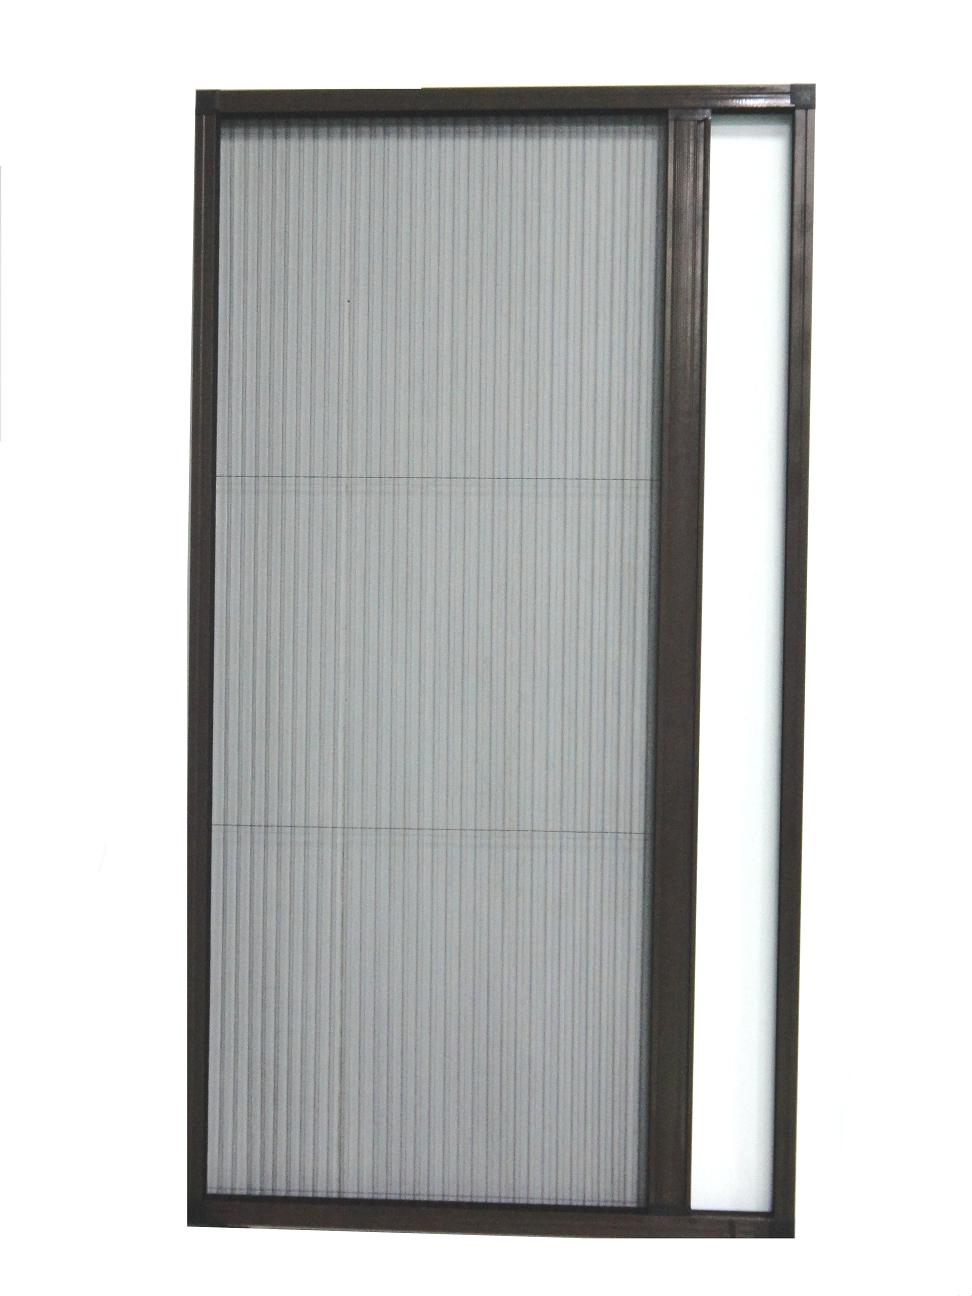 2.5G Pleated Retractable Screen / Taroko Door & Window Technologies, Inc.